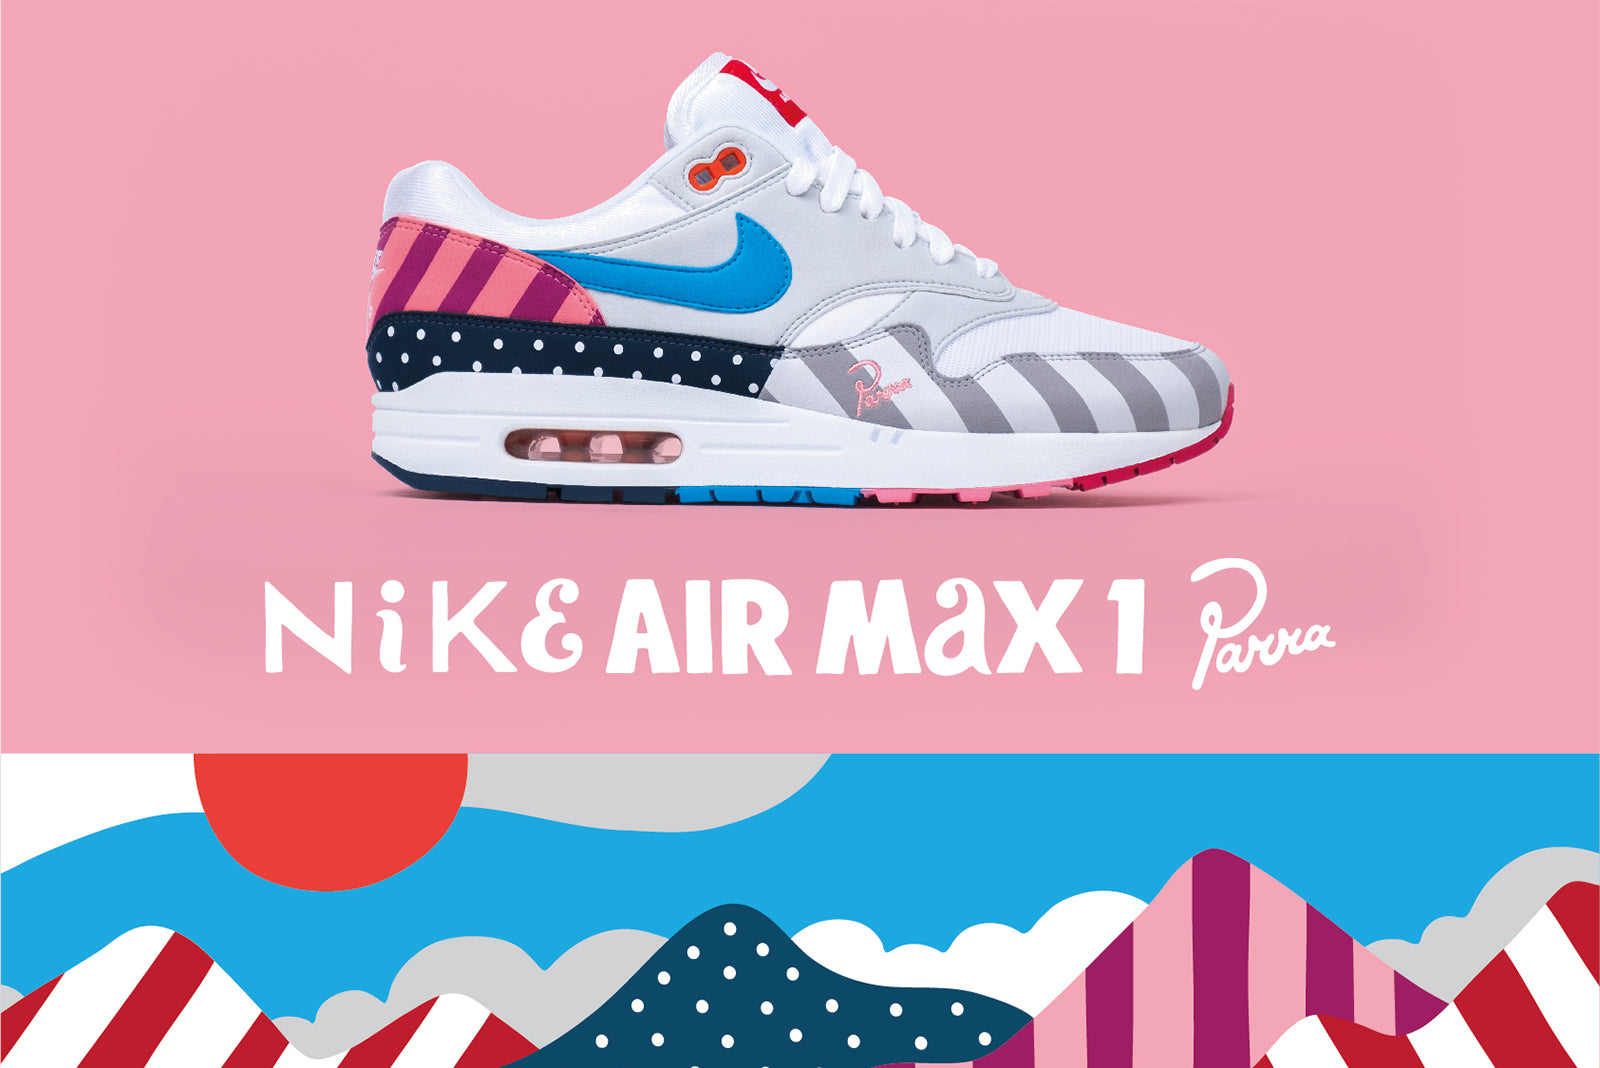 80c6583e1e Nike Air Max 1 x Parra AT3057-100. White/Multi Colour Price: £119.00.  Launch: Saturday 21st July; ONLINE 08:00BST and IN-STORE 10:00BST